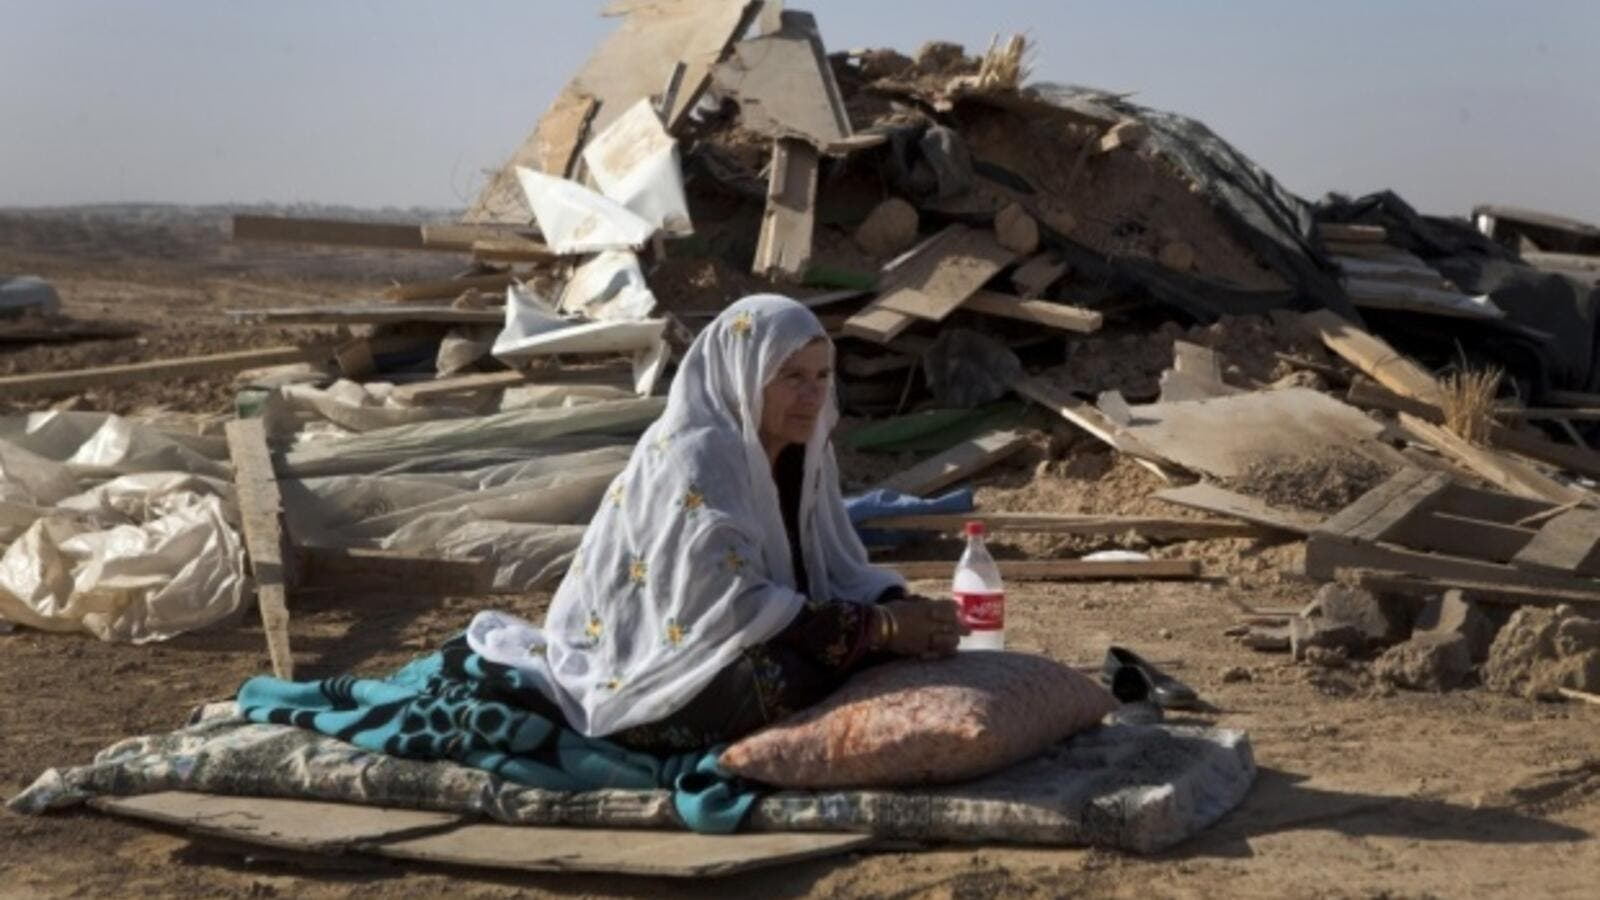 A Bedouin woman sits in front of a razed home. (AFP/File)